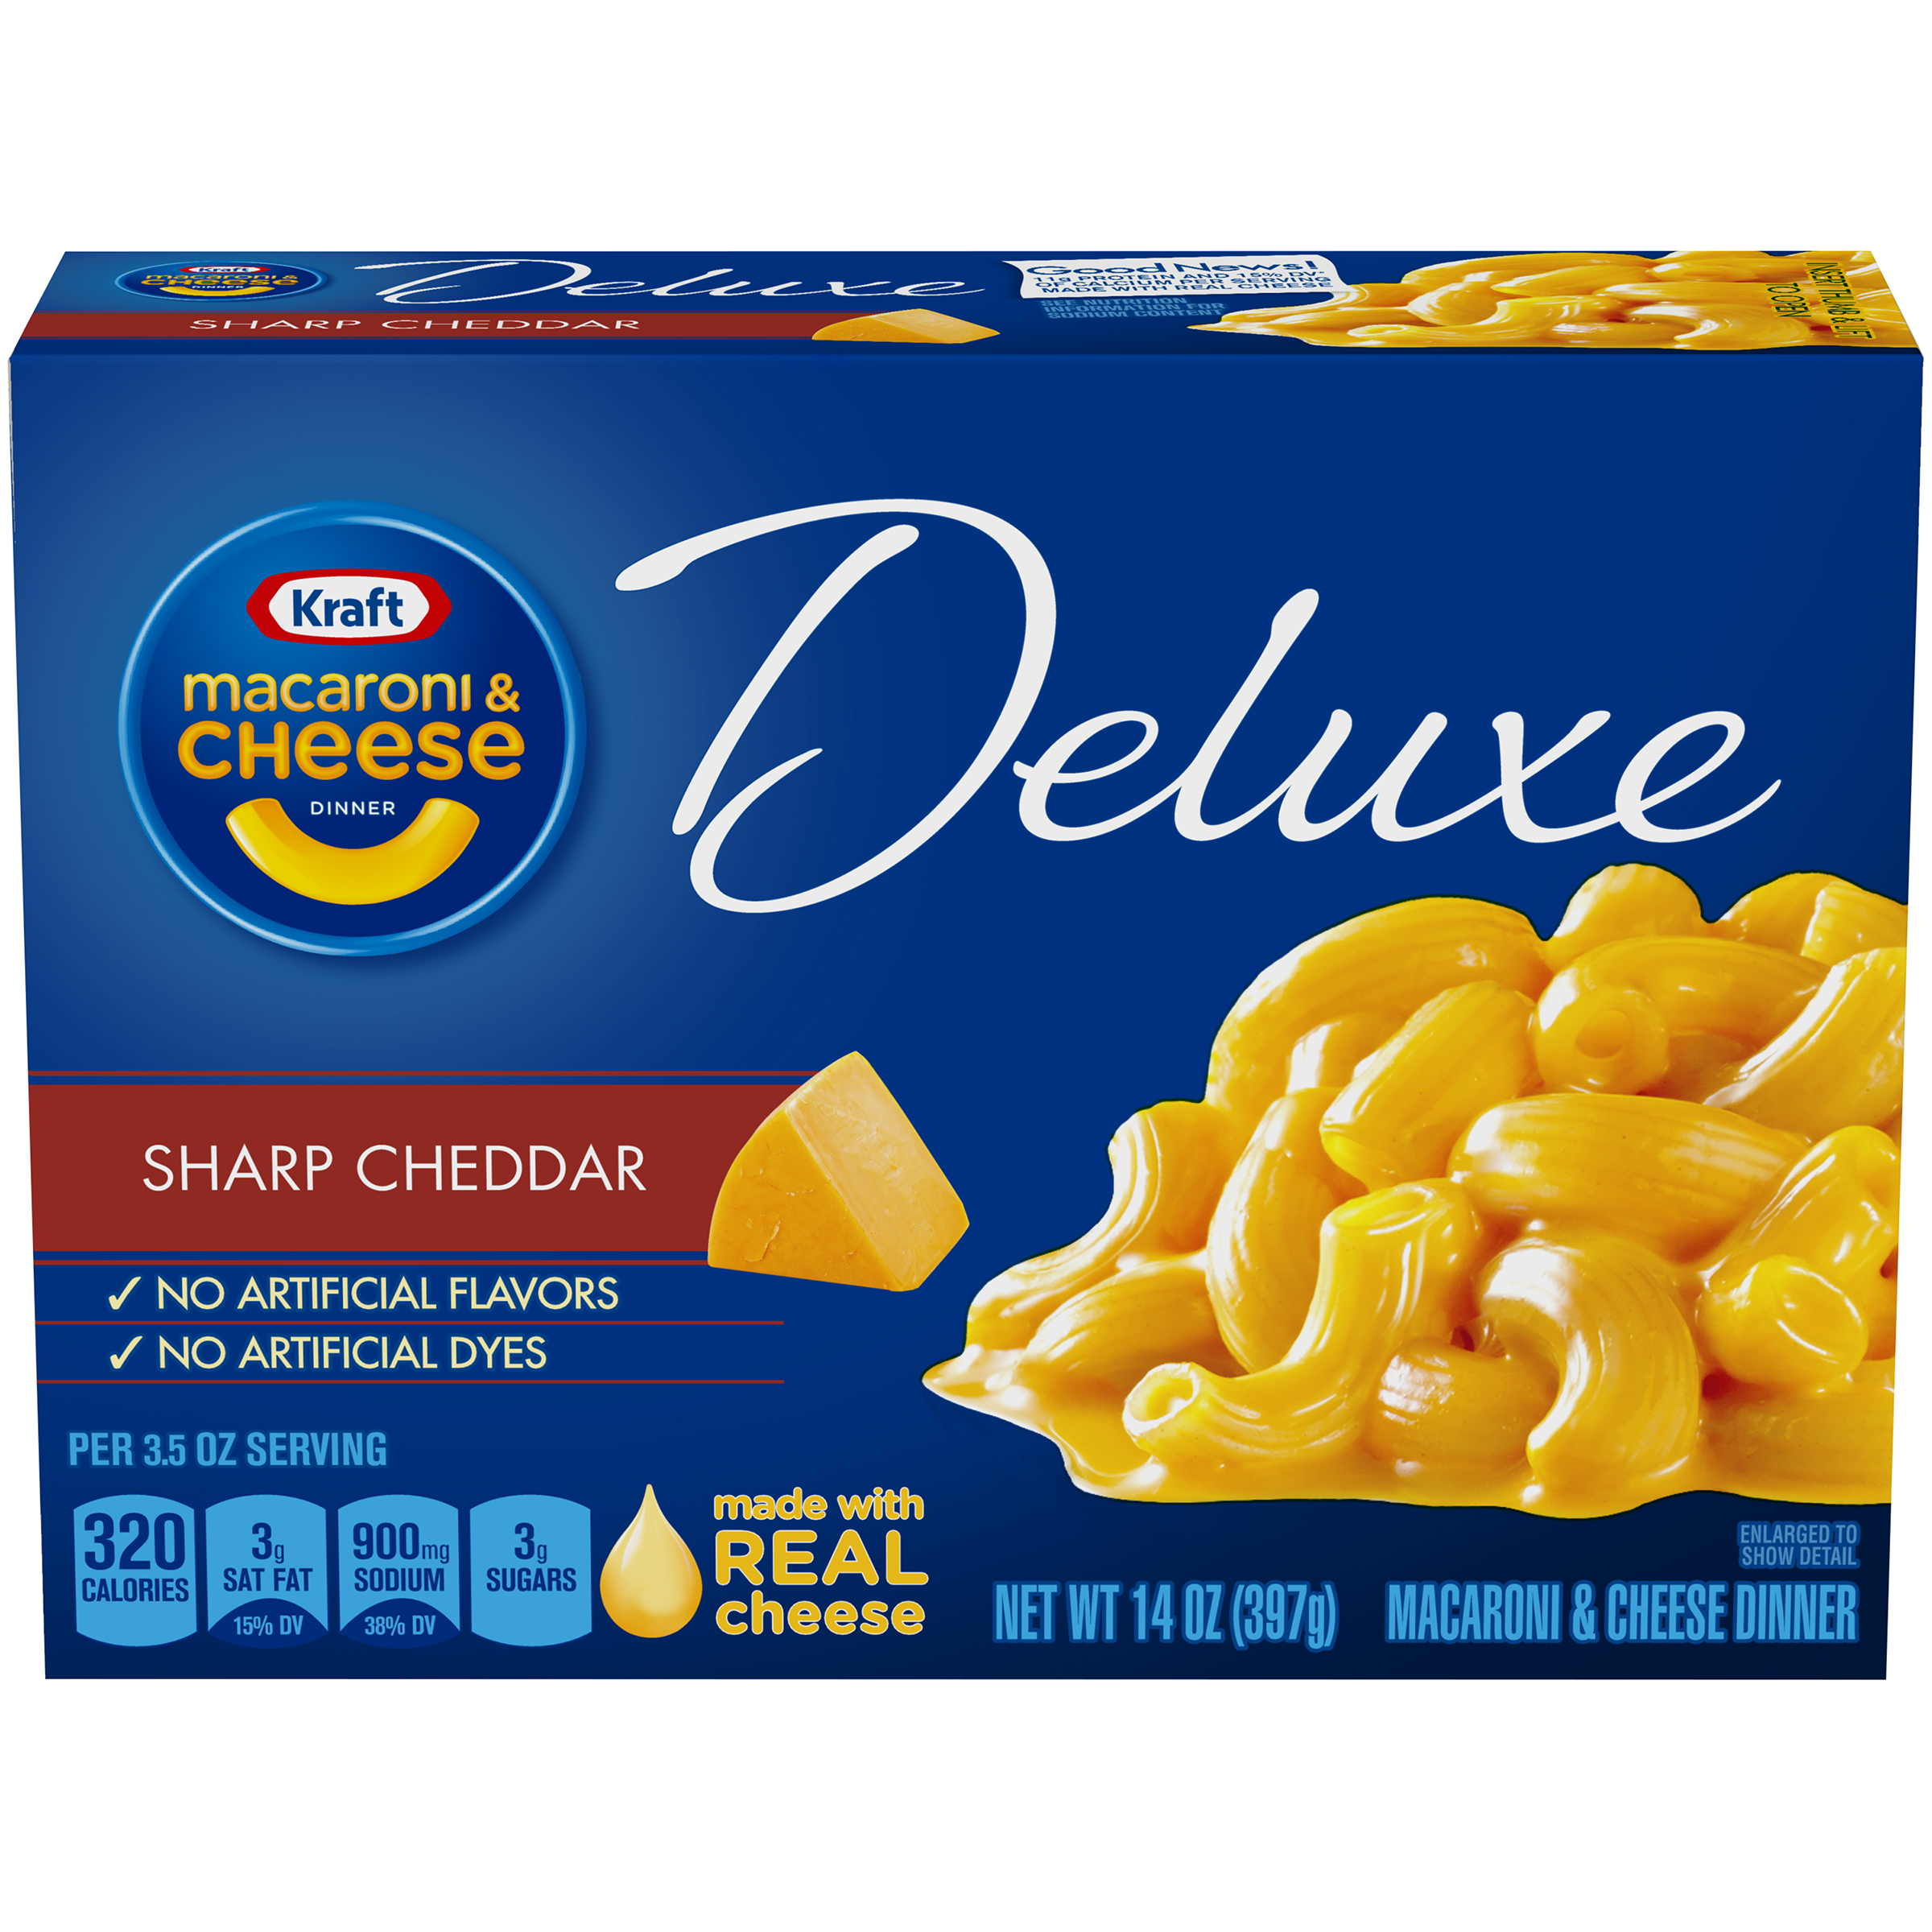 Kraft Macaroni & Cheese Dinner Deluxe Original Cheddar, 14 oz Box